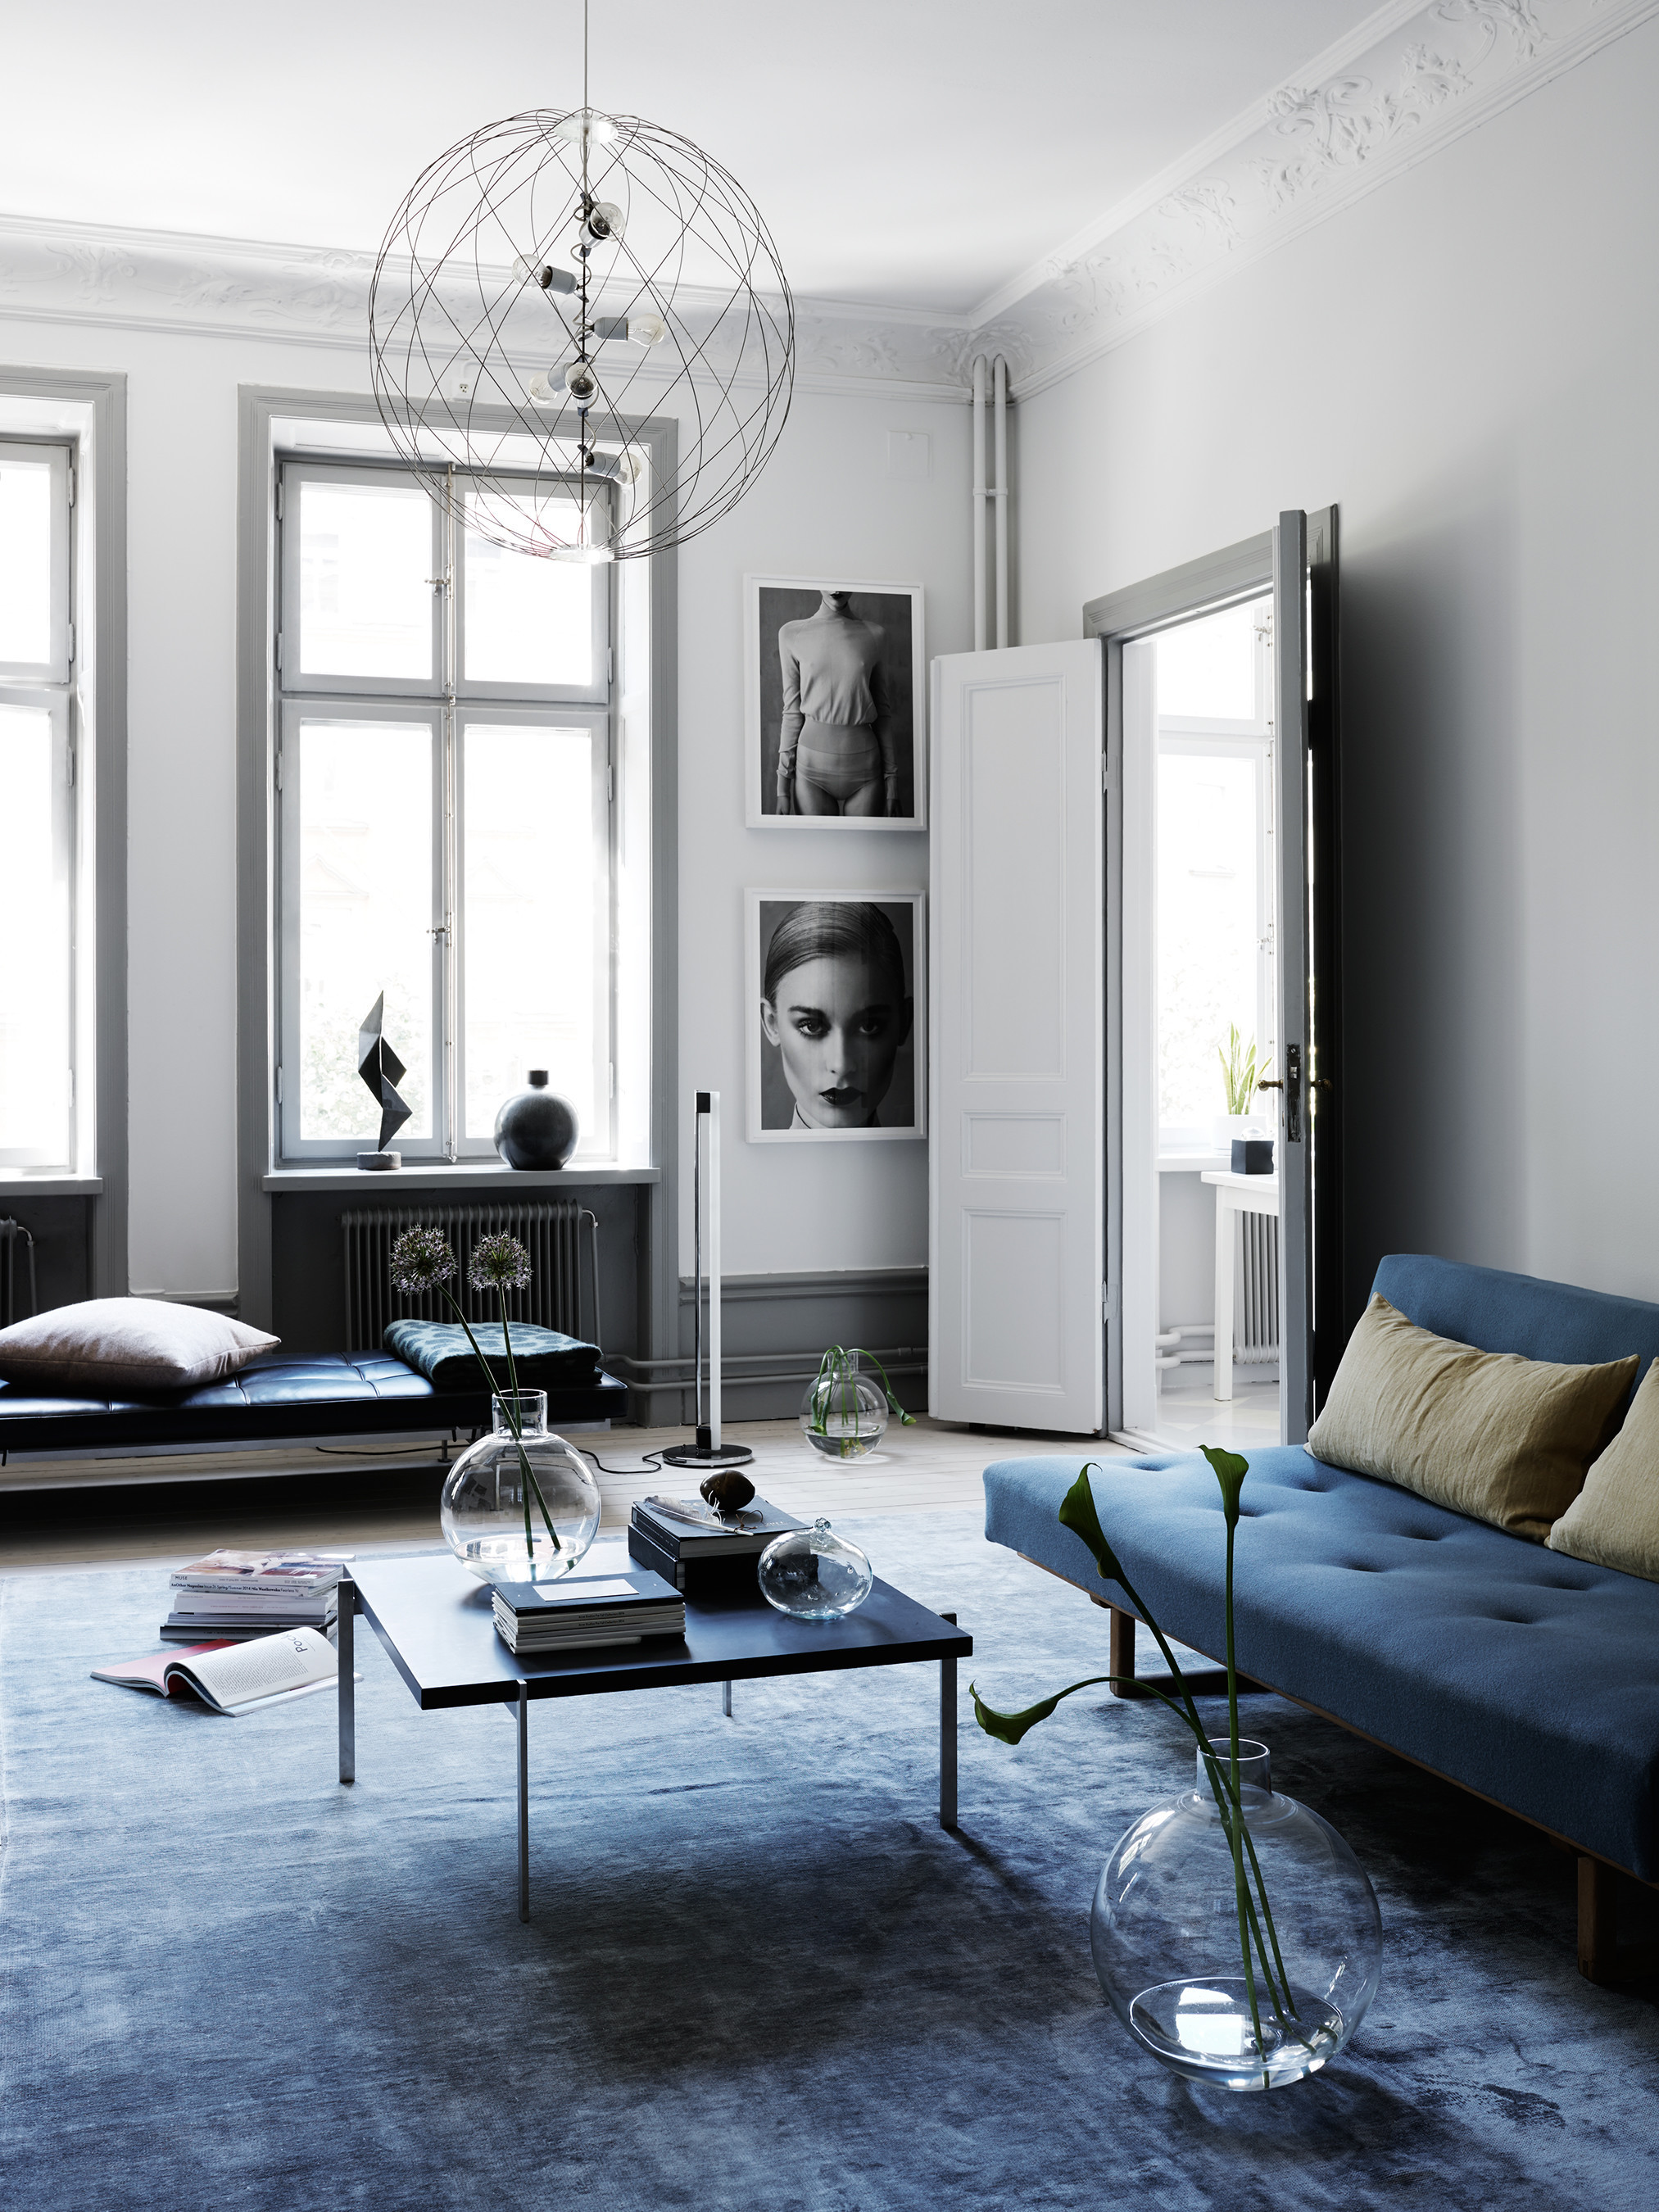 . Kristofer Johnsson Photographer   living space